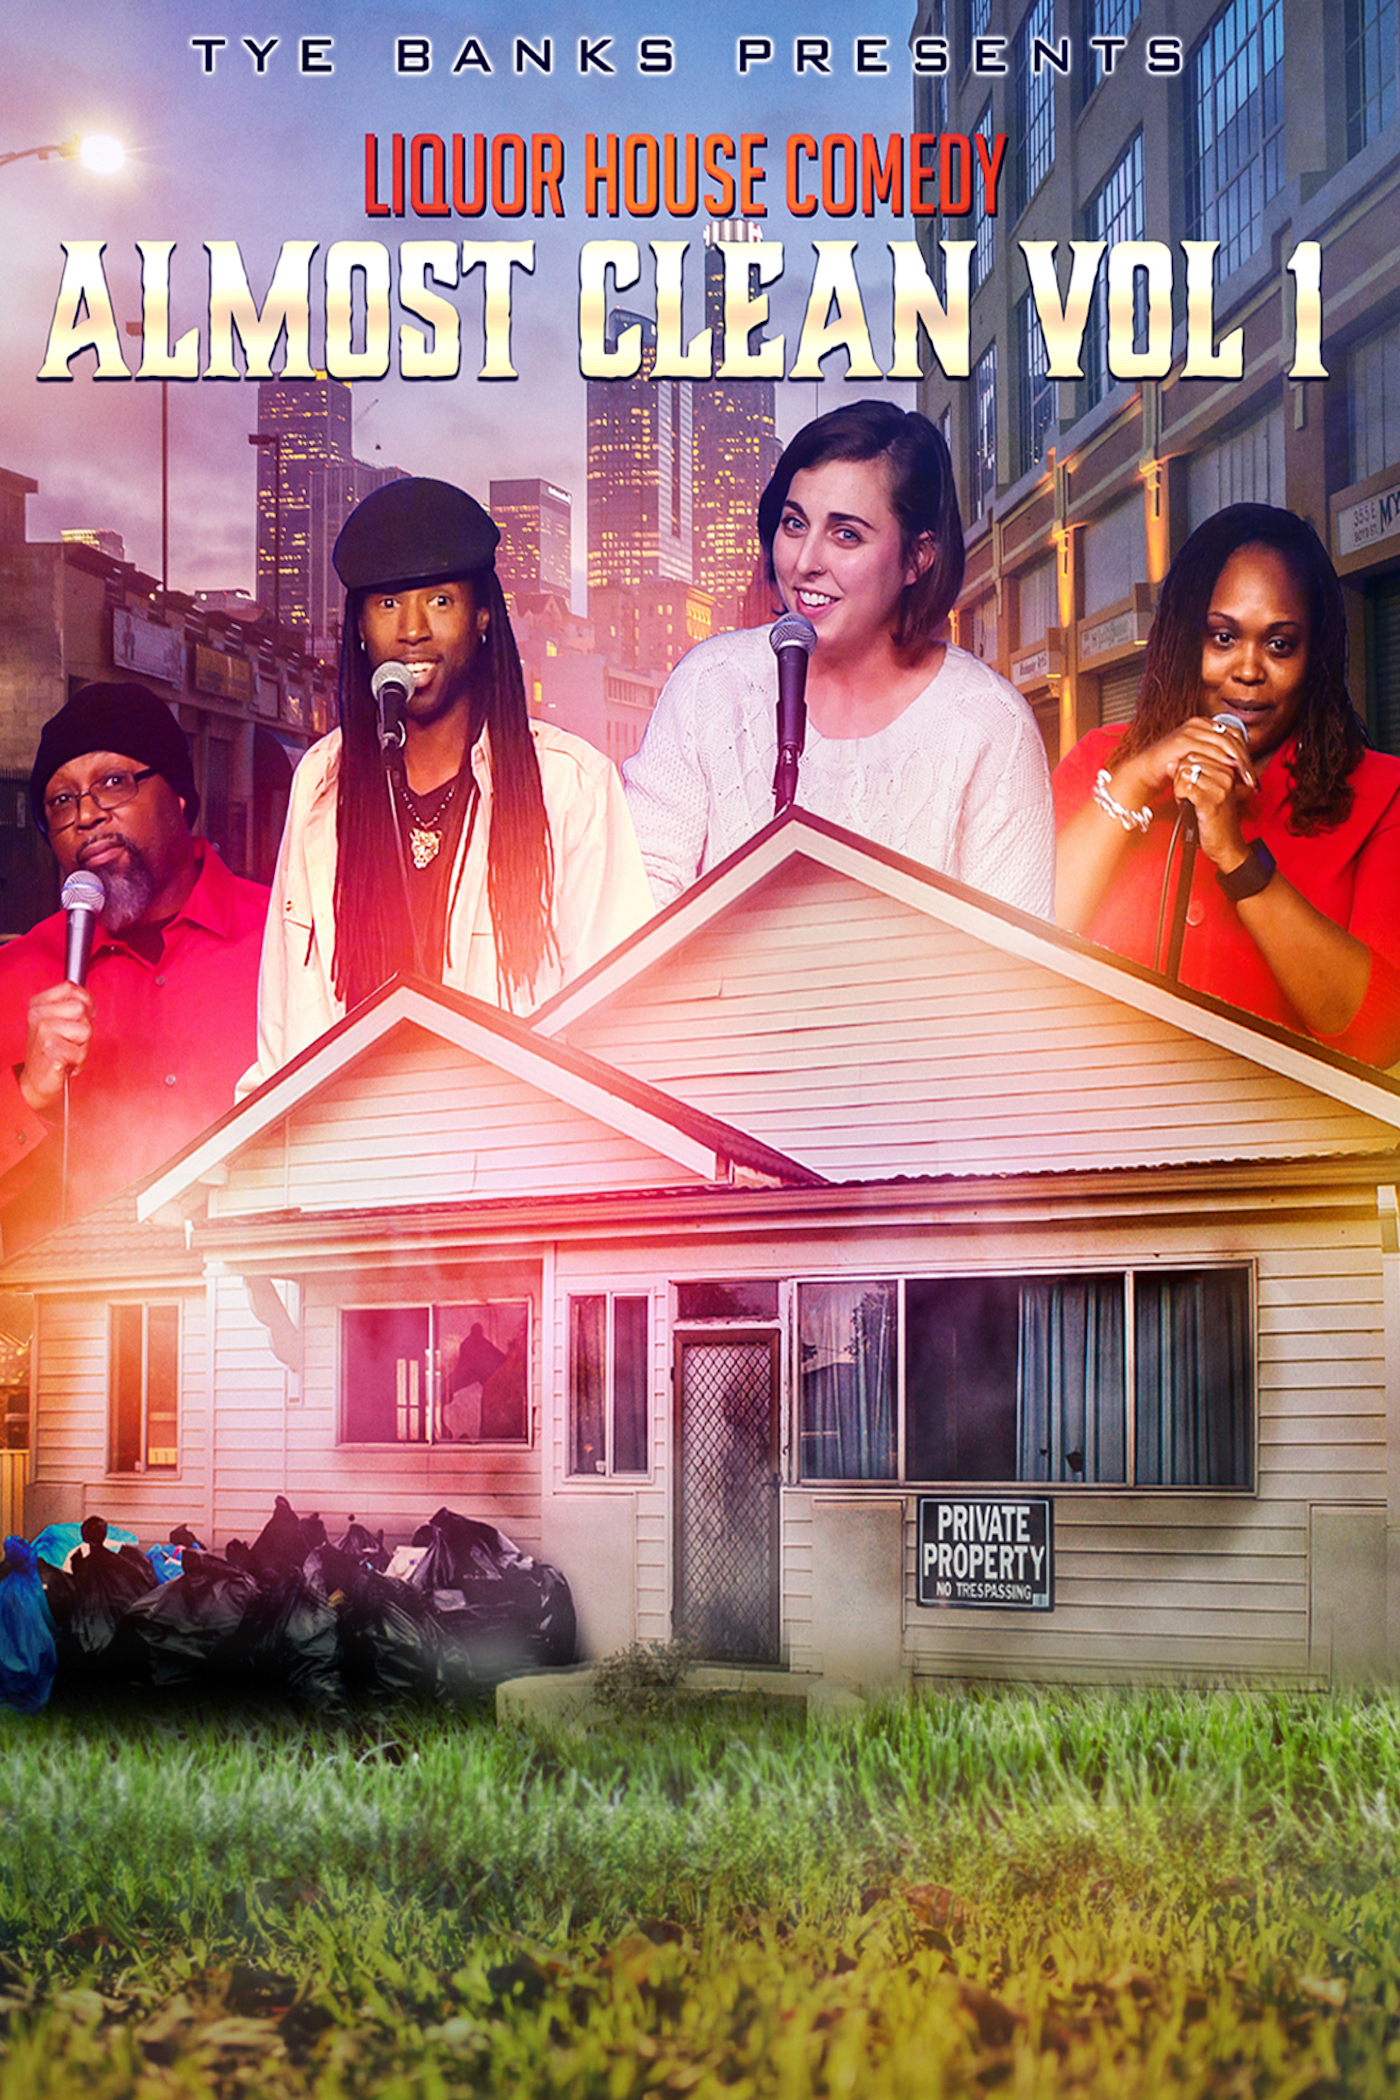 Liquor House Comedy Almost Clean, Vol. 1 on FREECABLE TV